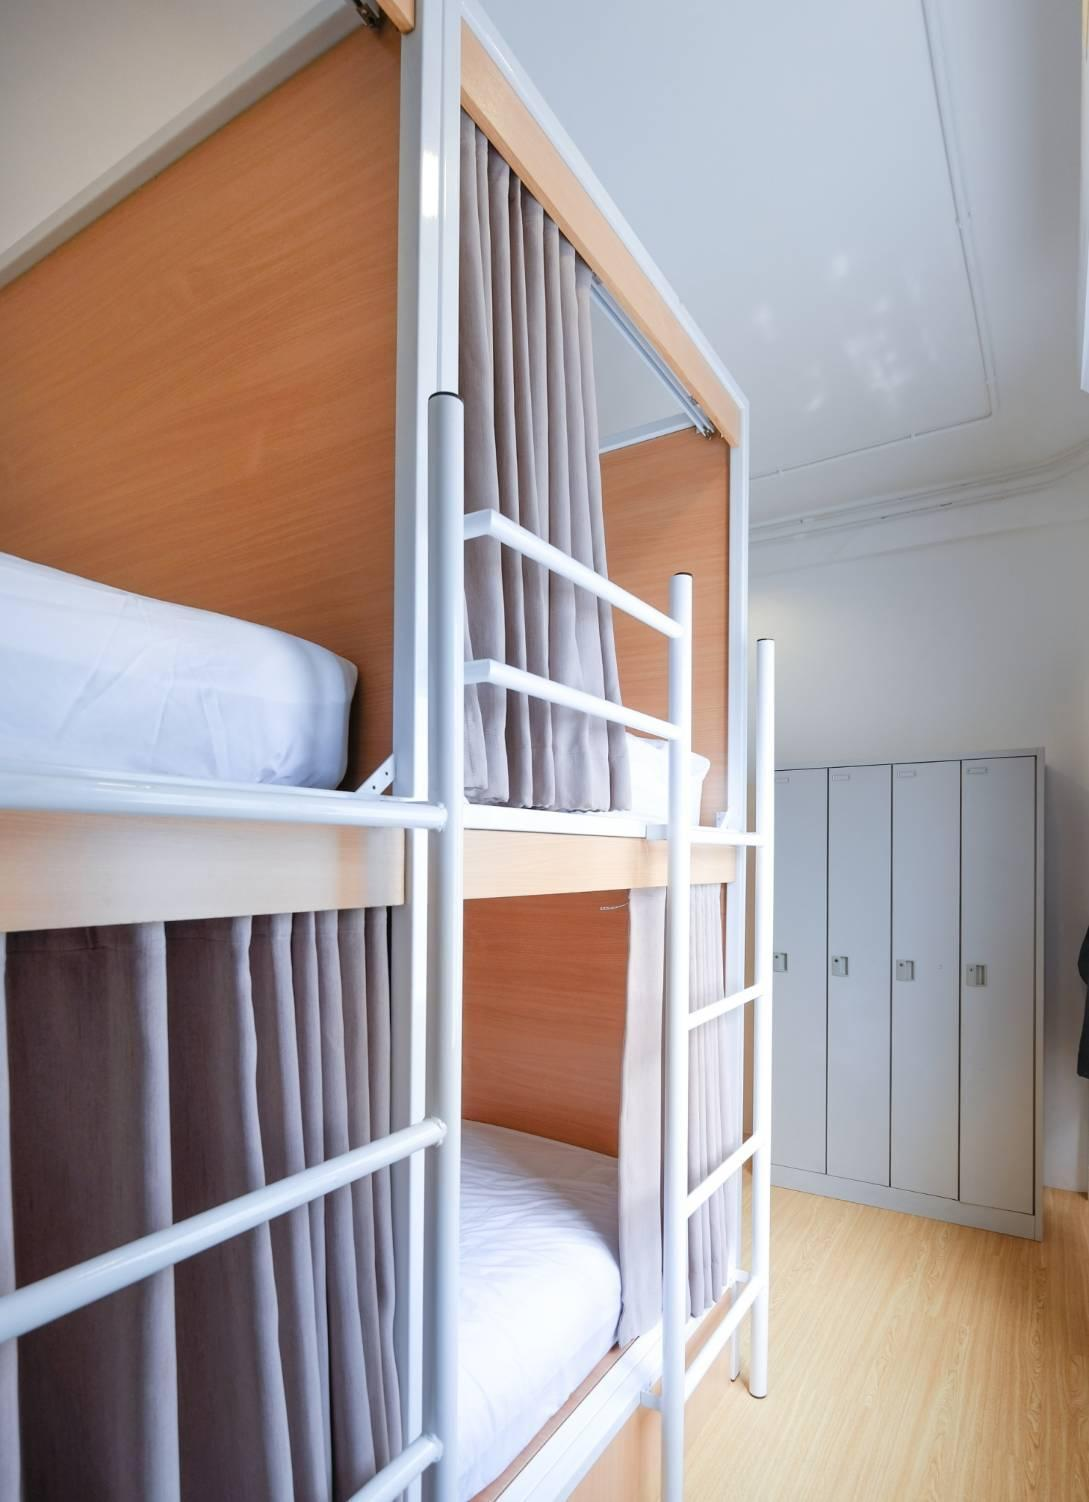 1 Posto Letto in Dormitorio Misto con 4 Letti (1 Person in 4-Bed Dormitory - Mixed)